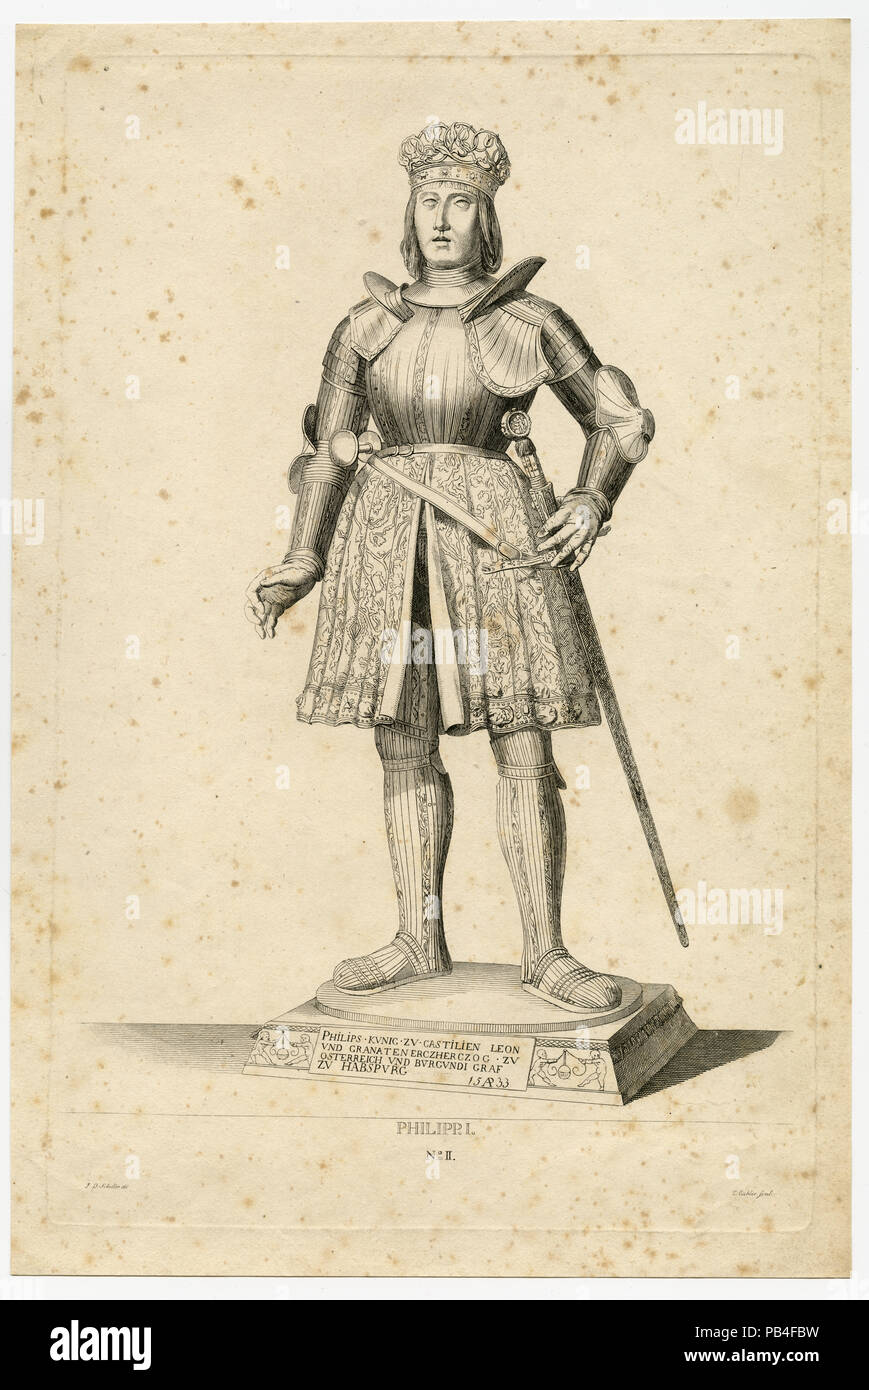 Statue of Philipp I - Stock Image